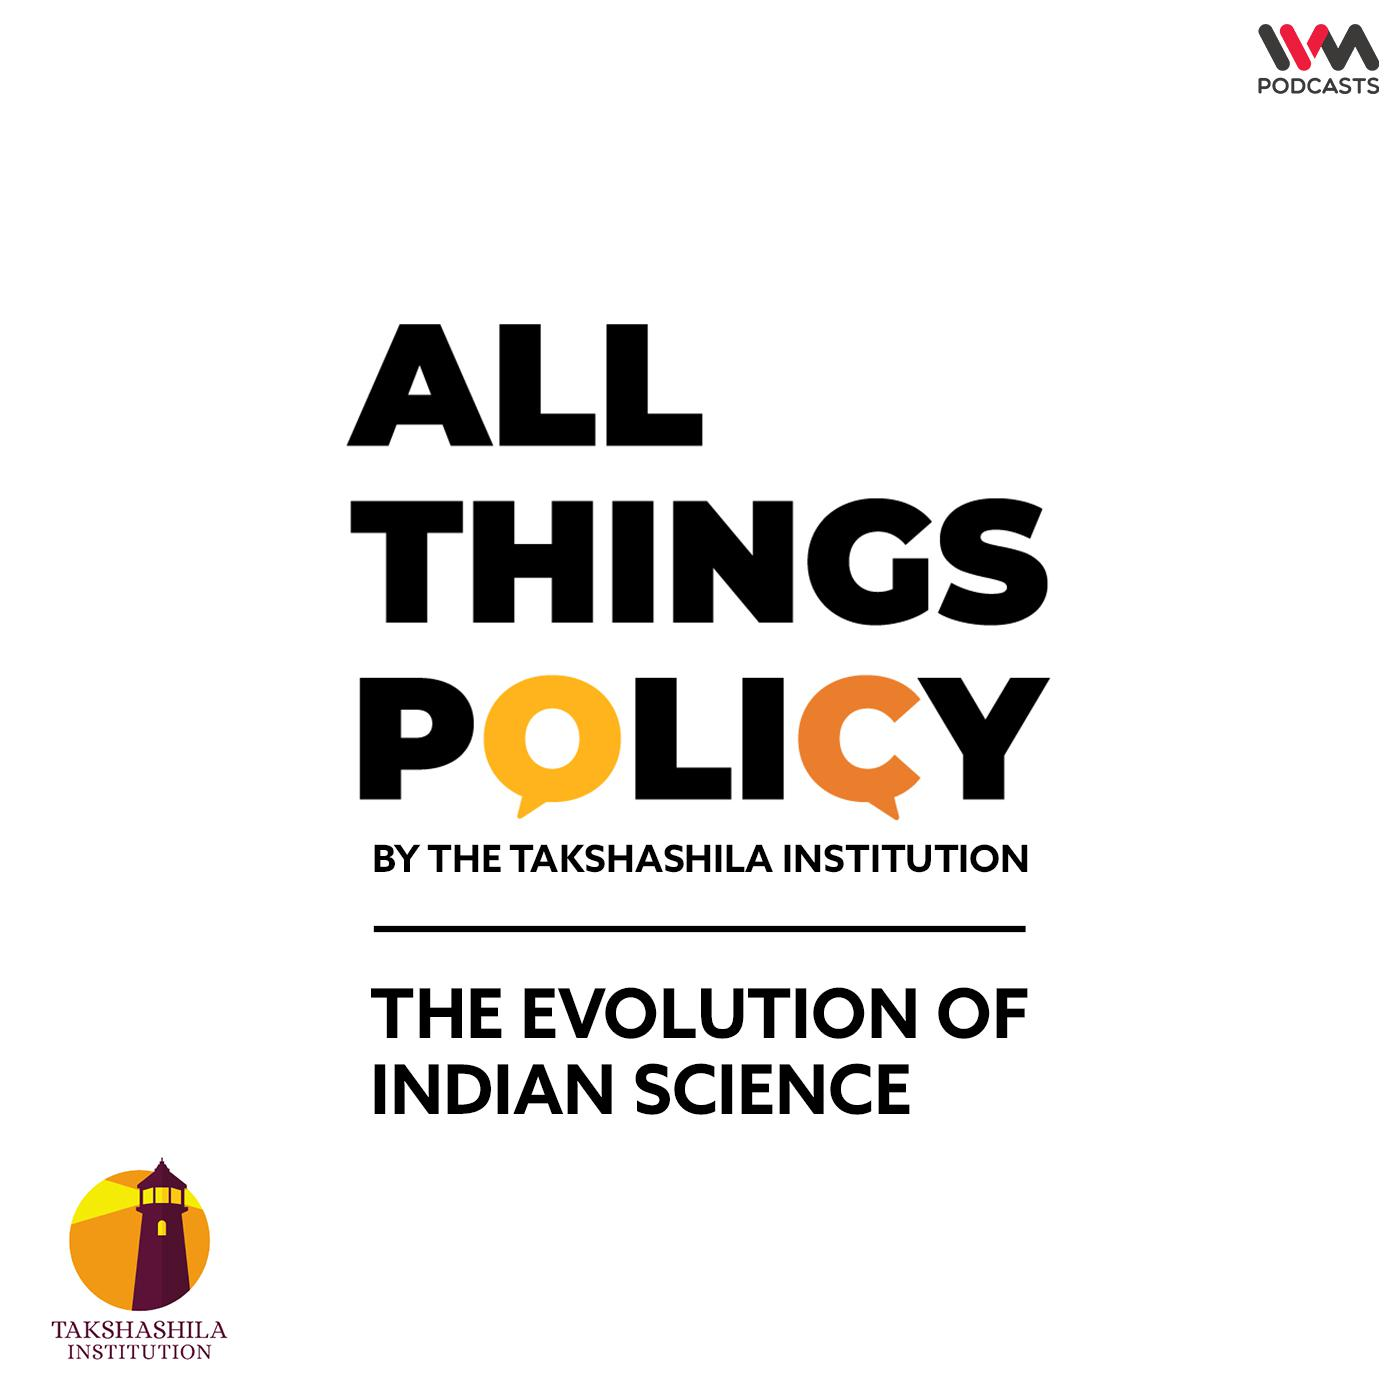 Ep. 587: The Evolution of Indian Science